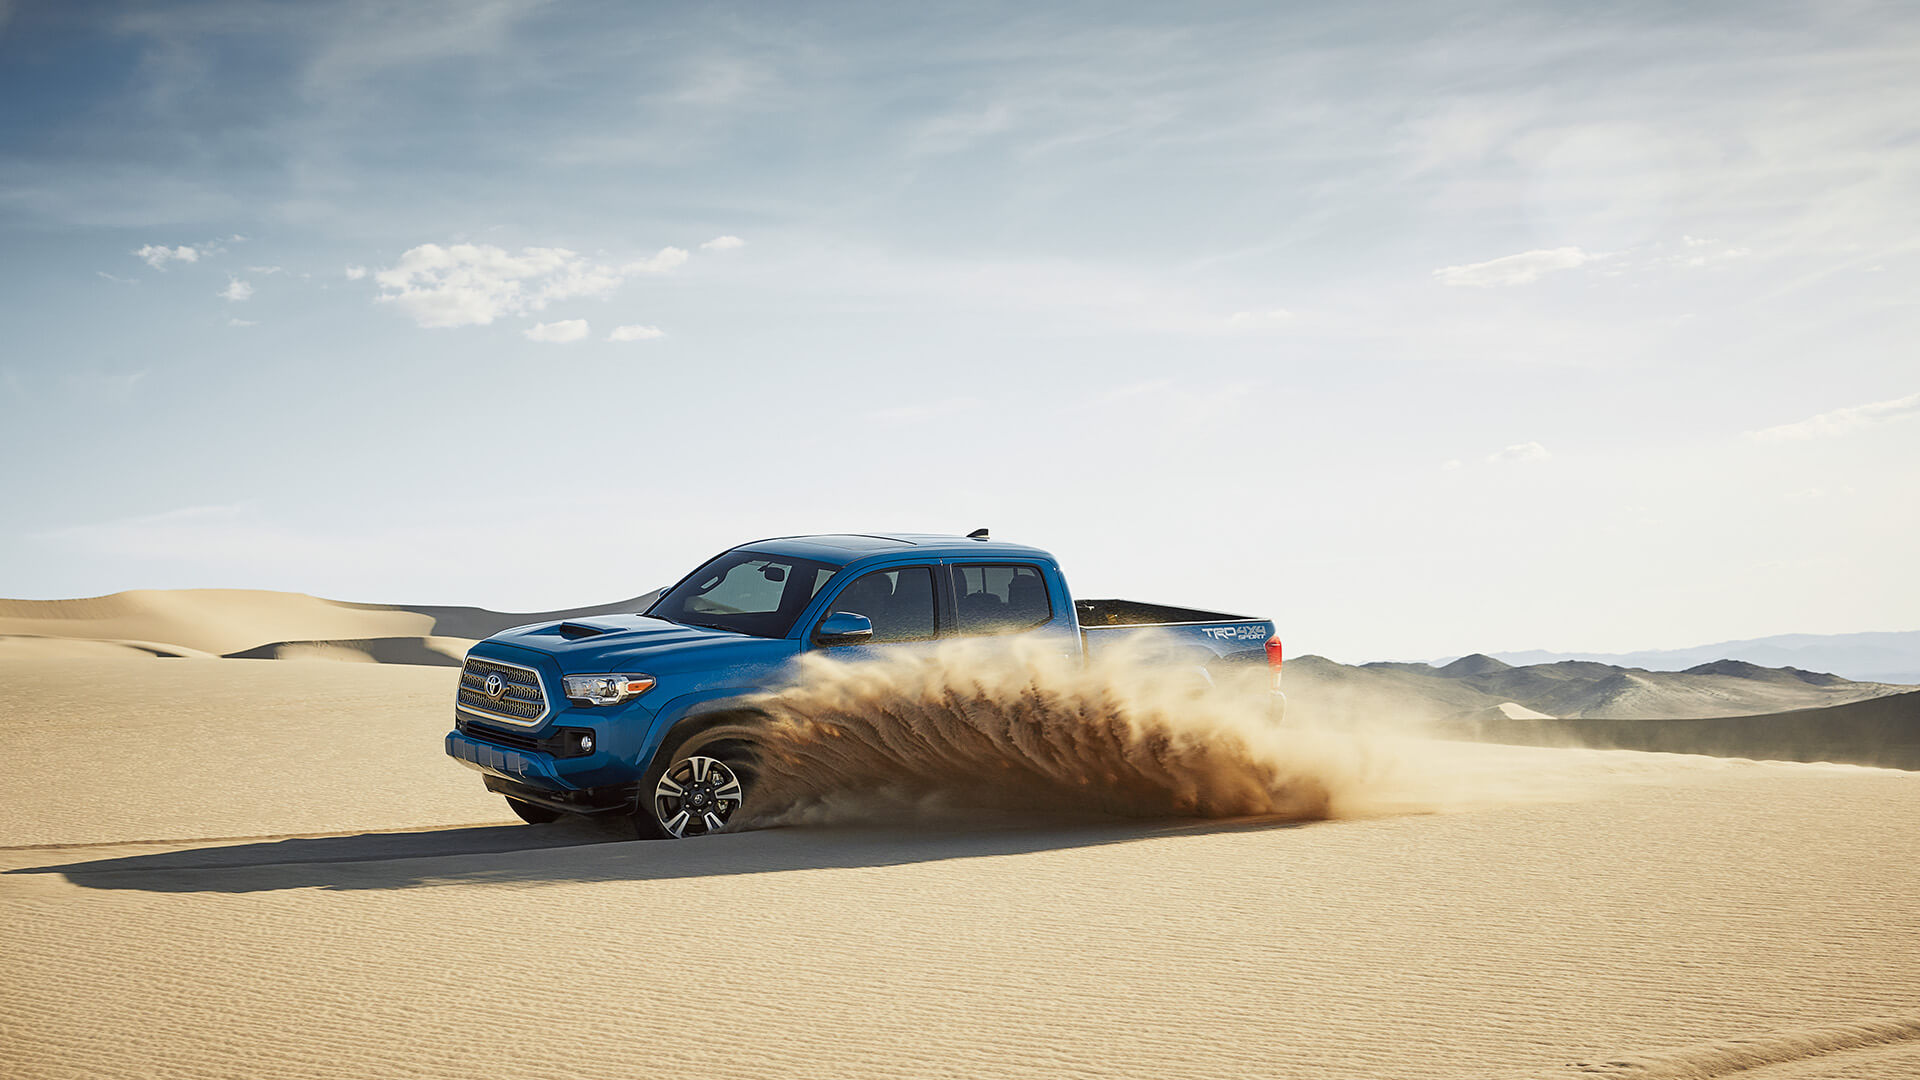 2016 Toyota Tacoma blue exterior model